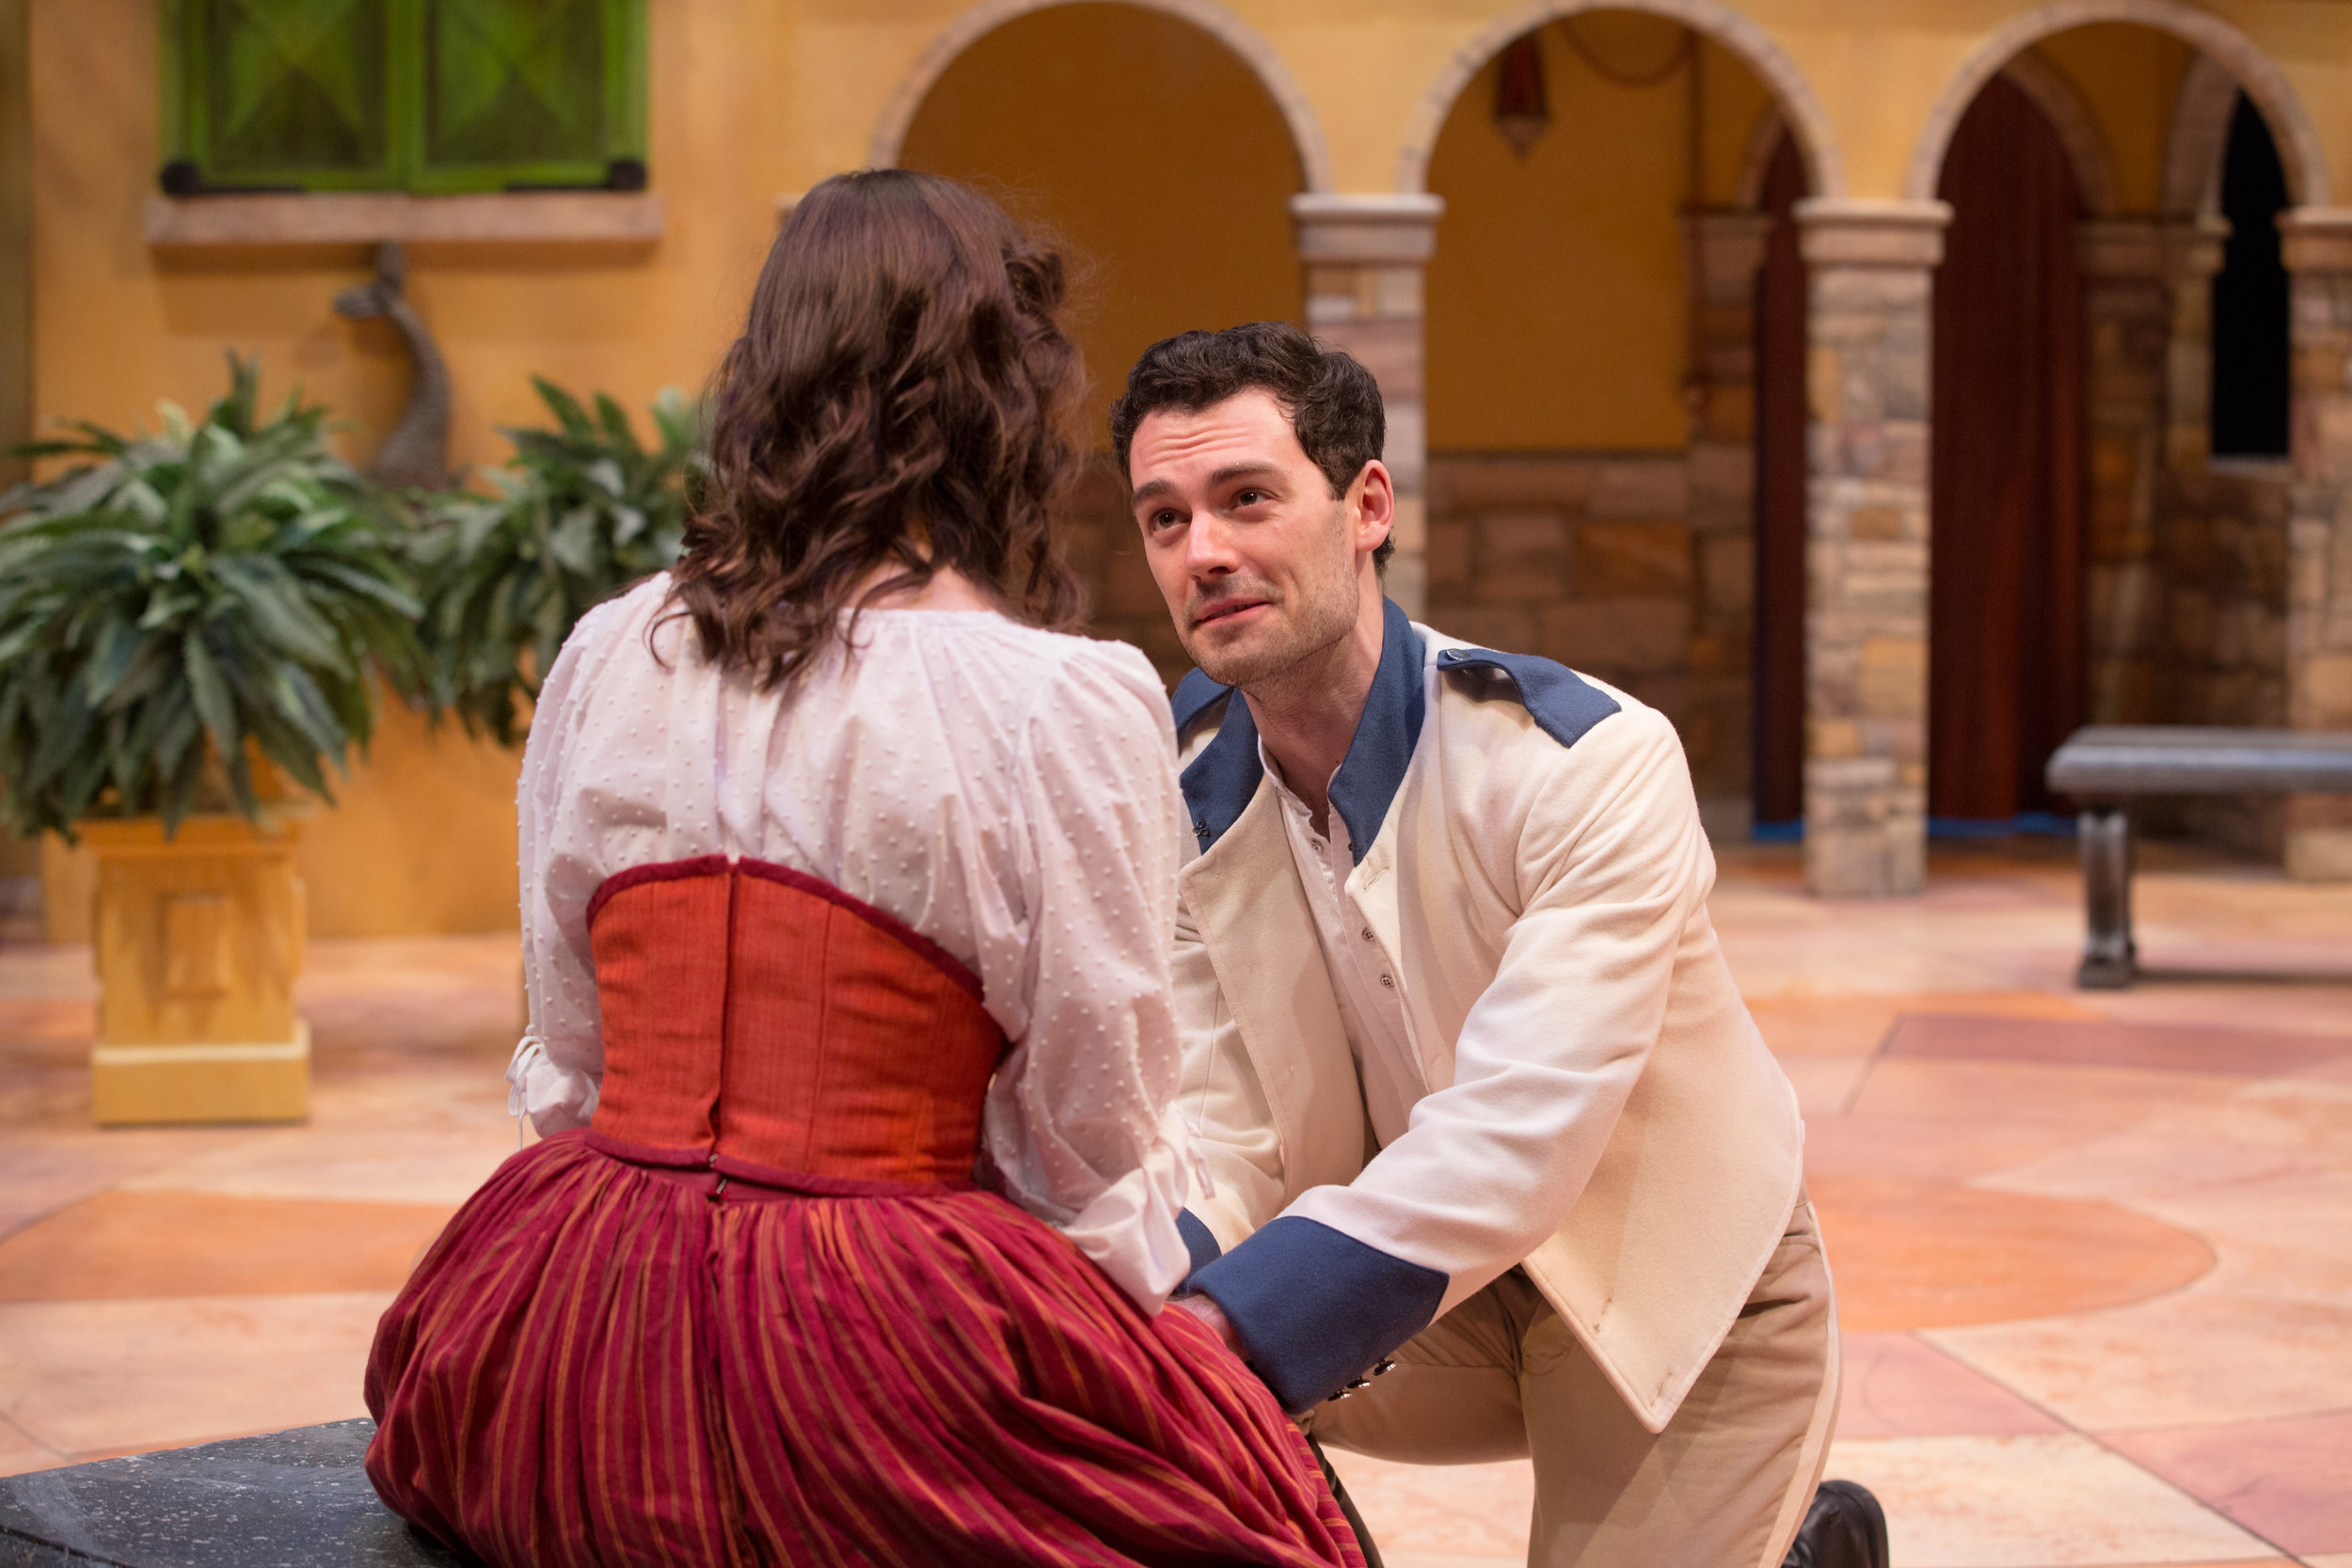 Woodrow as Benedick and Katie Fanning as Beatrice in Alabama Shakespeare Festival's 2017 production of Much Ado About Nothing.